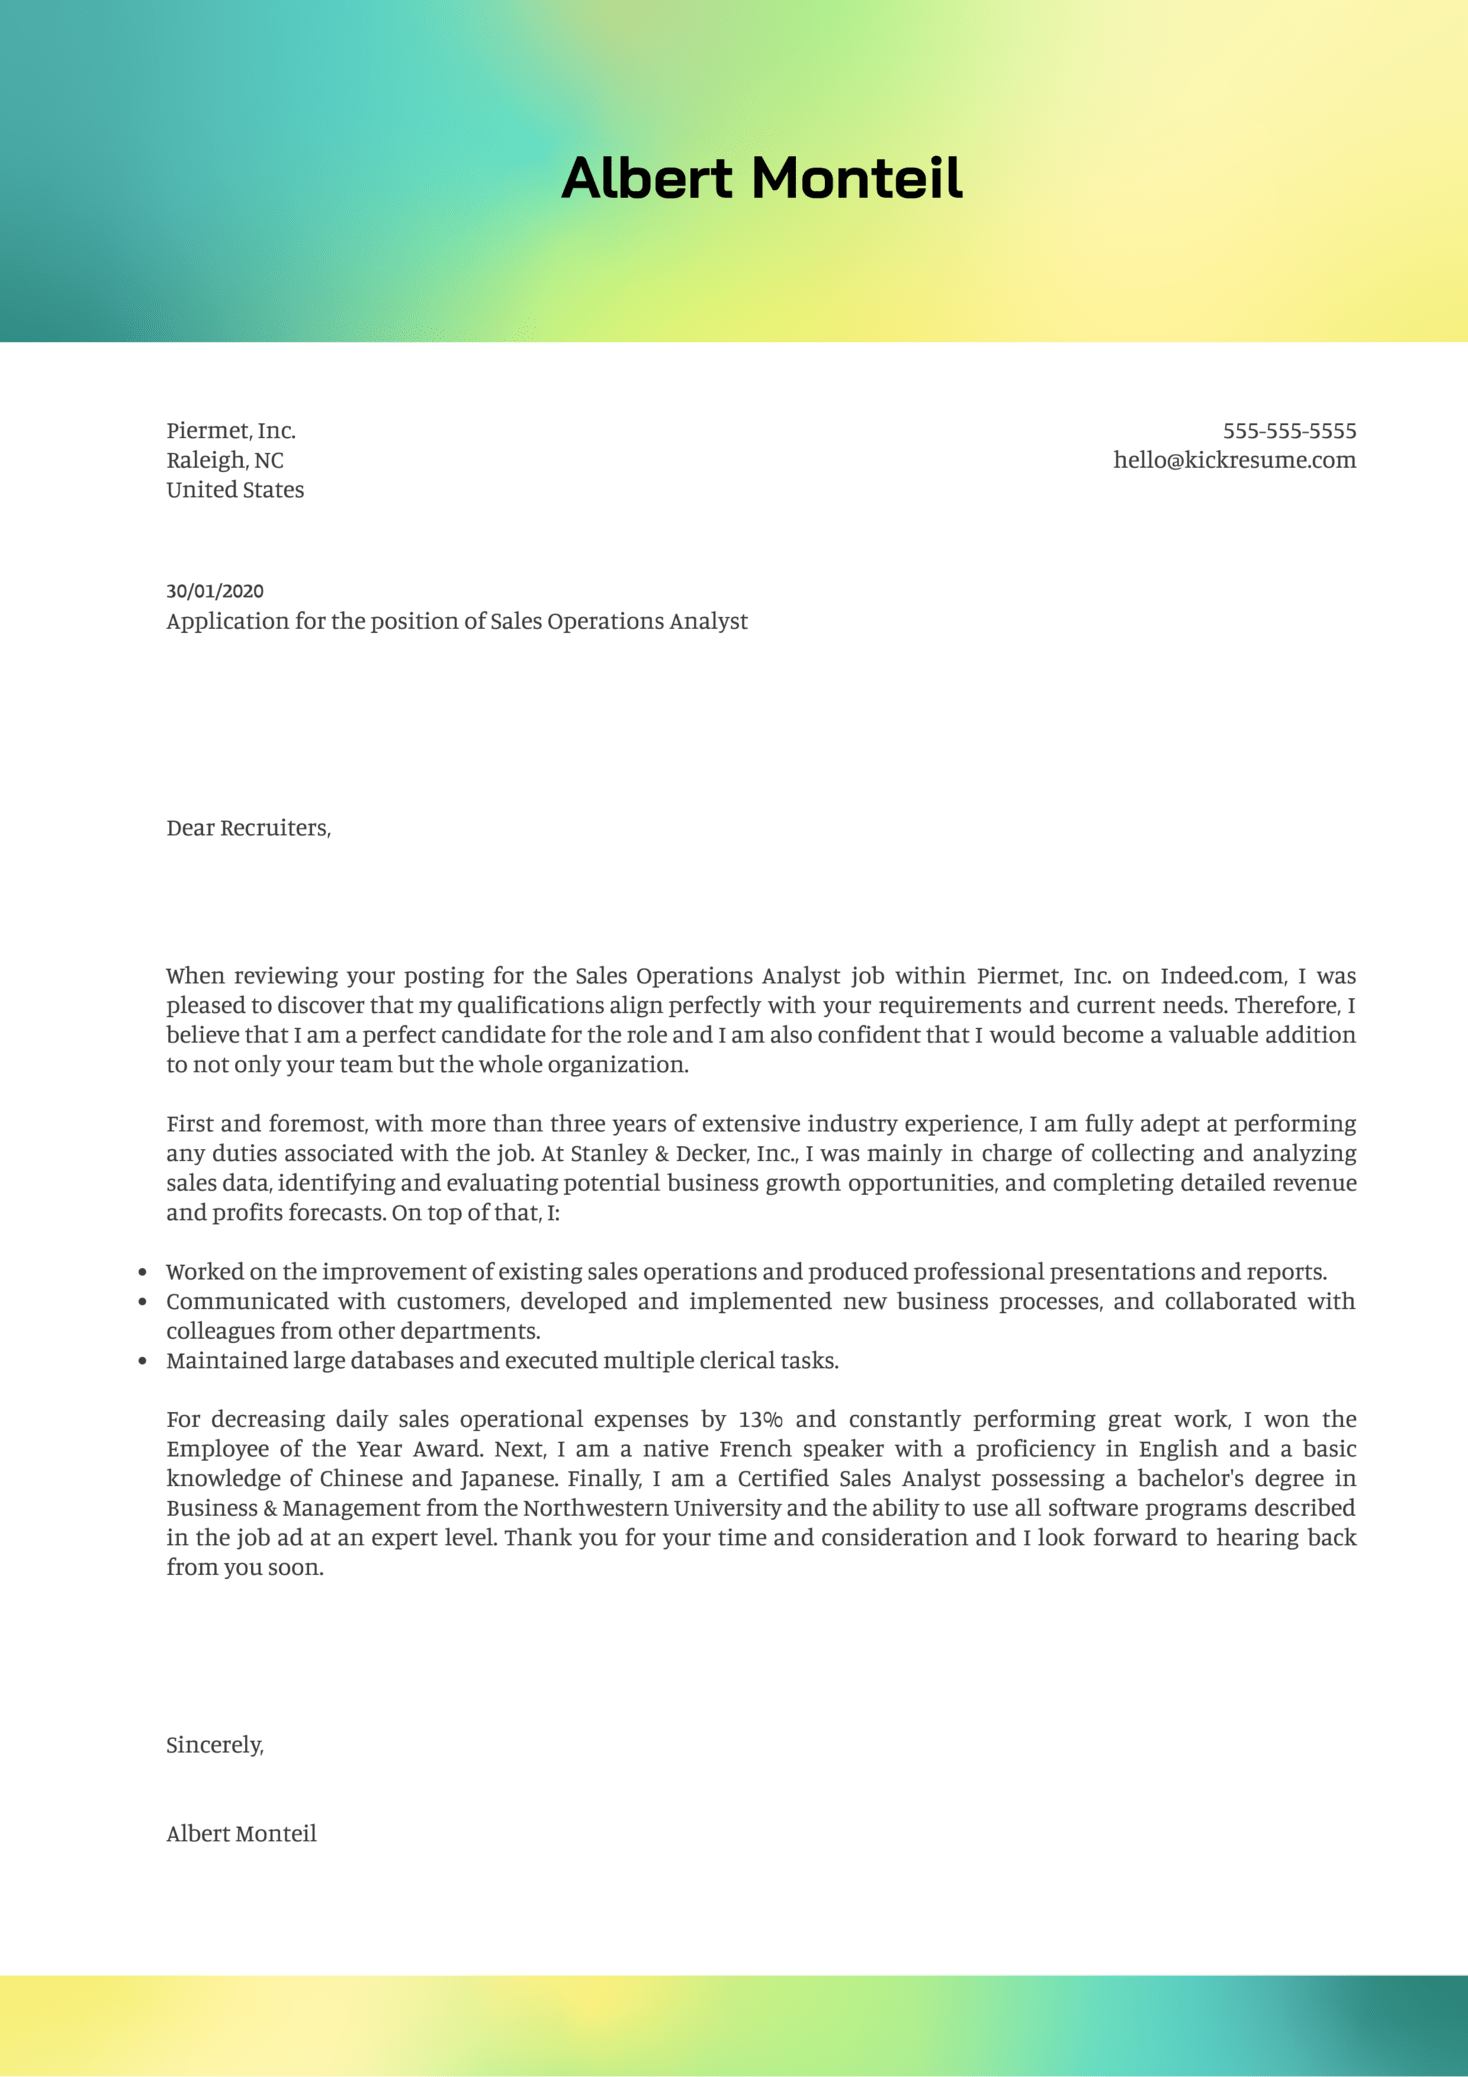 Sales Operations Analyst Cover Letter Sample